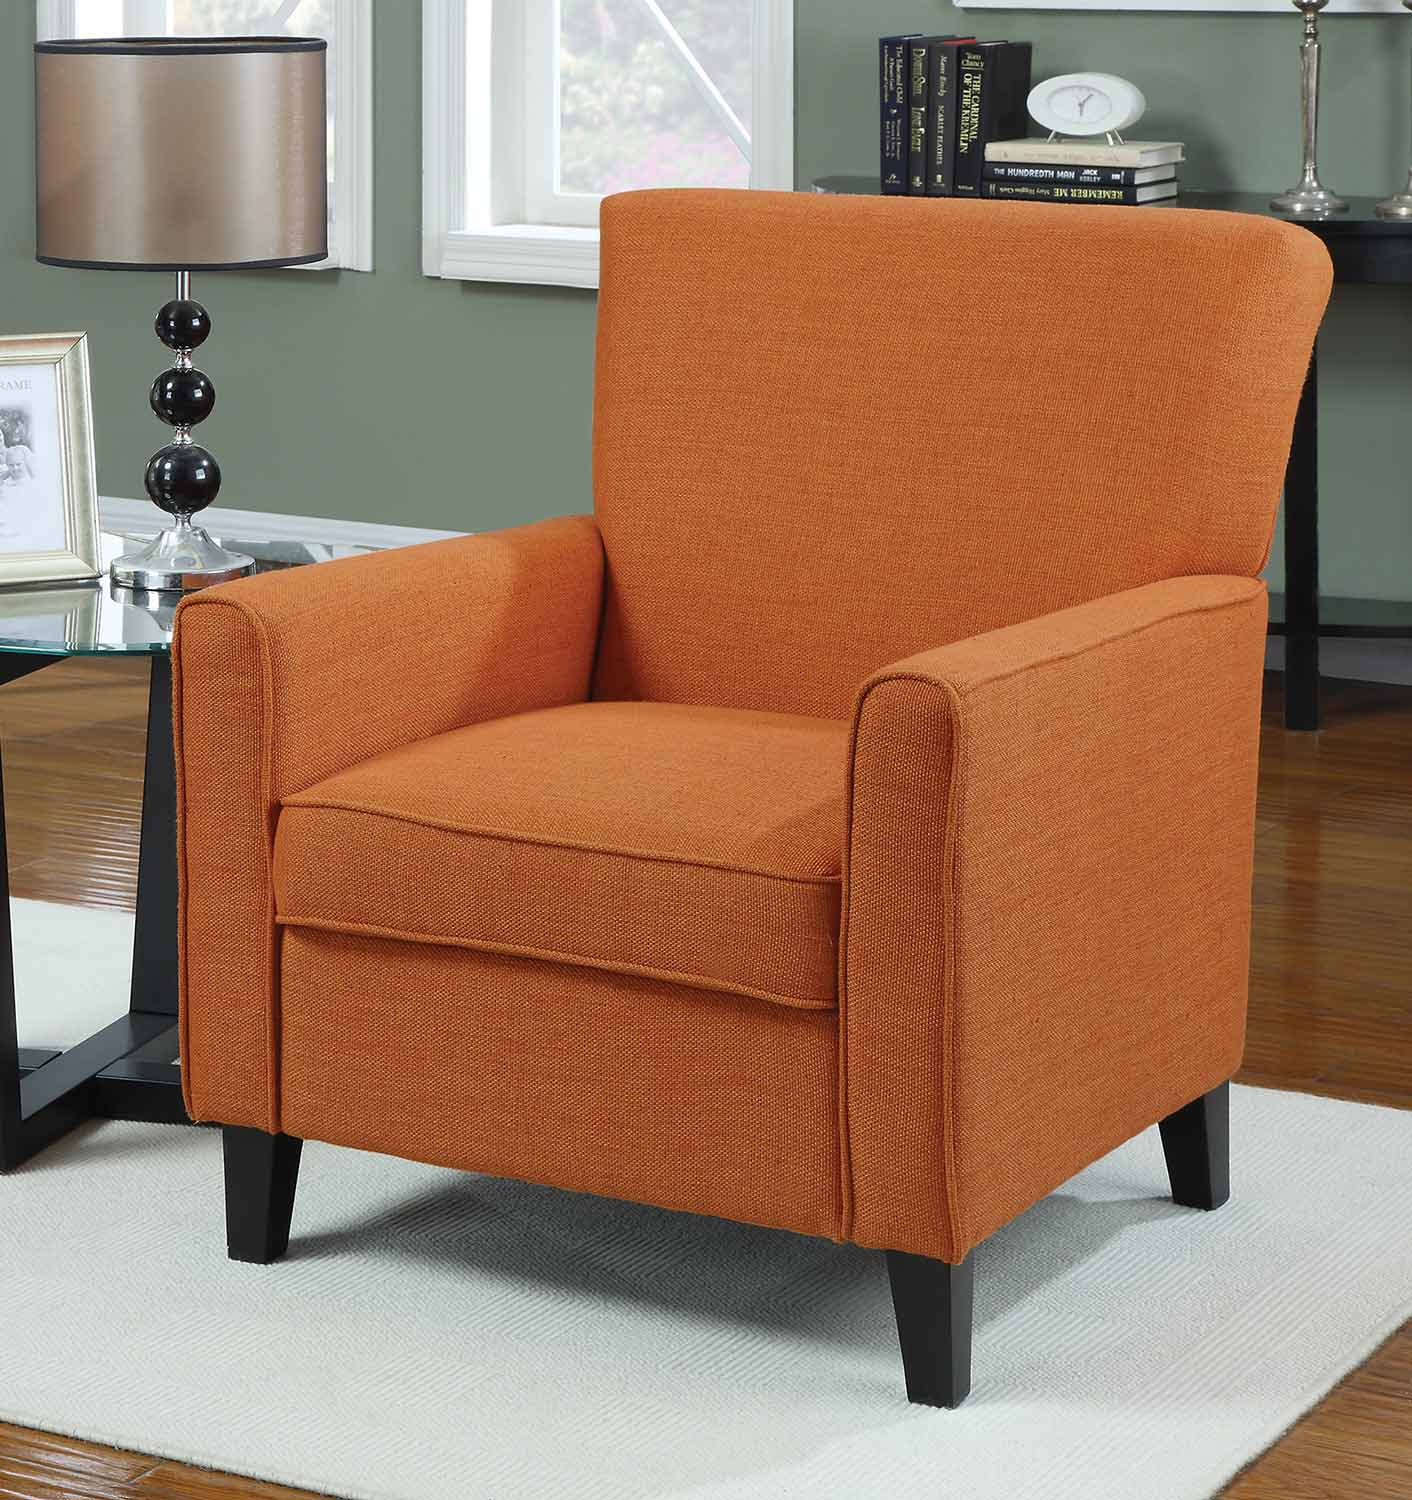 Coaster 902094 Accent Chair - Orange